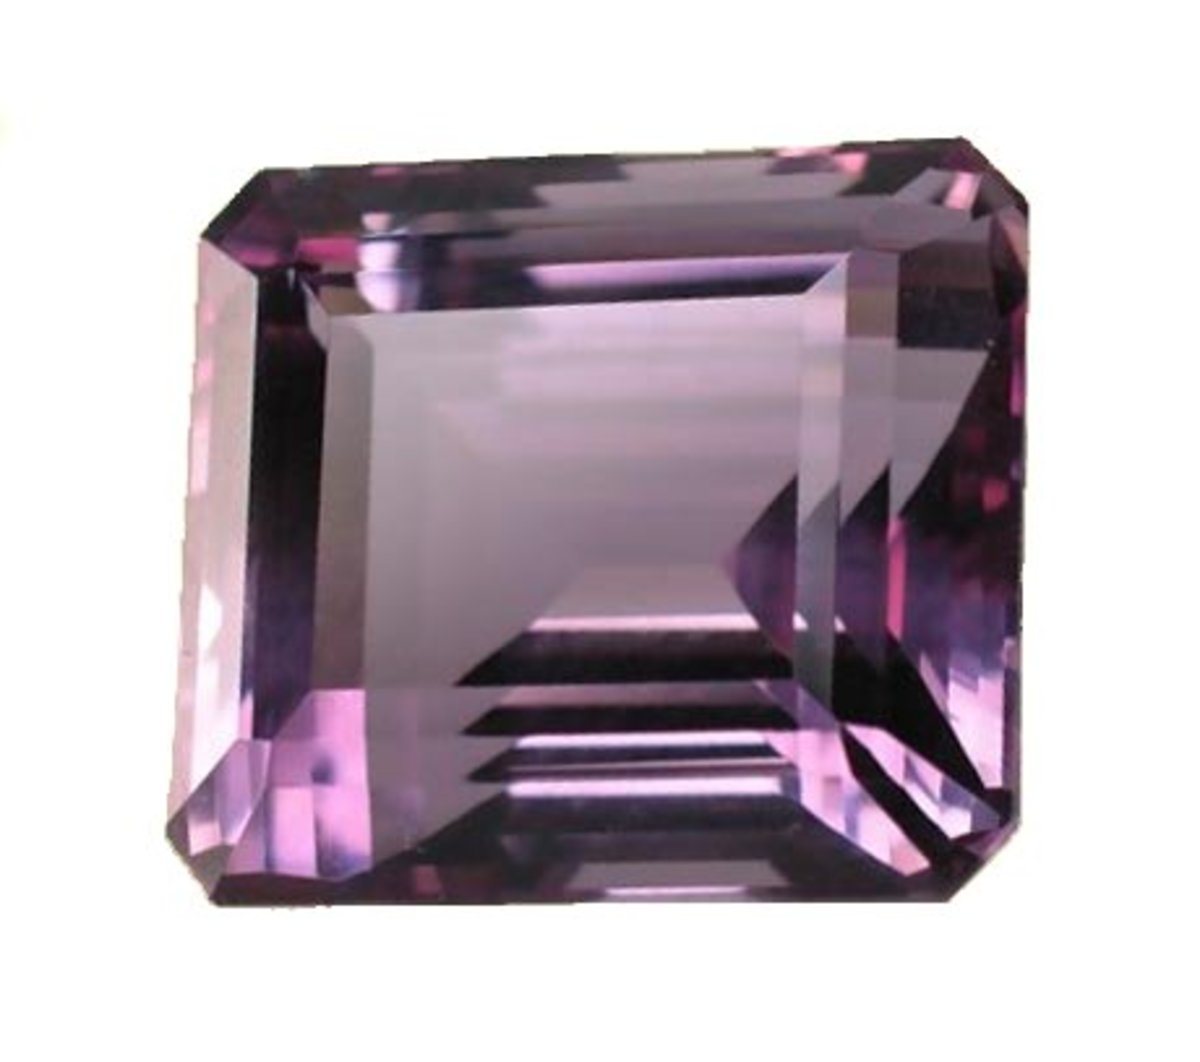 Amethyst, one of the five cardinal gems of antiquity